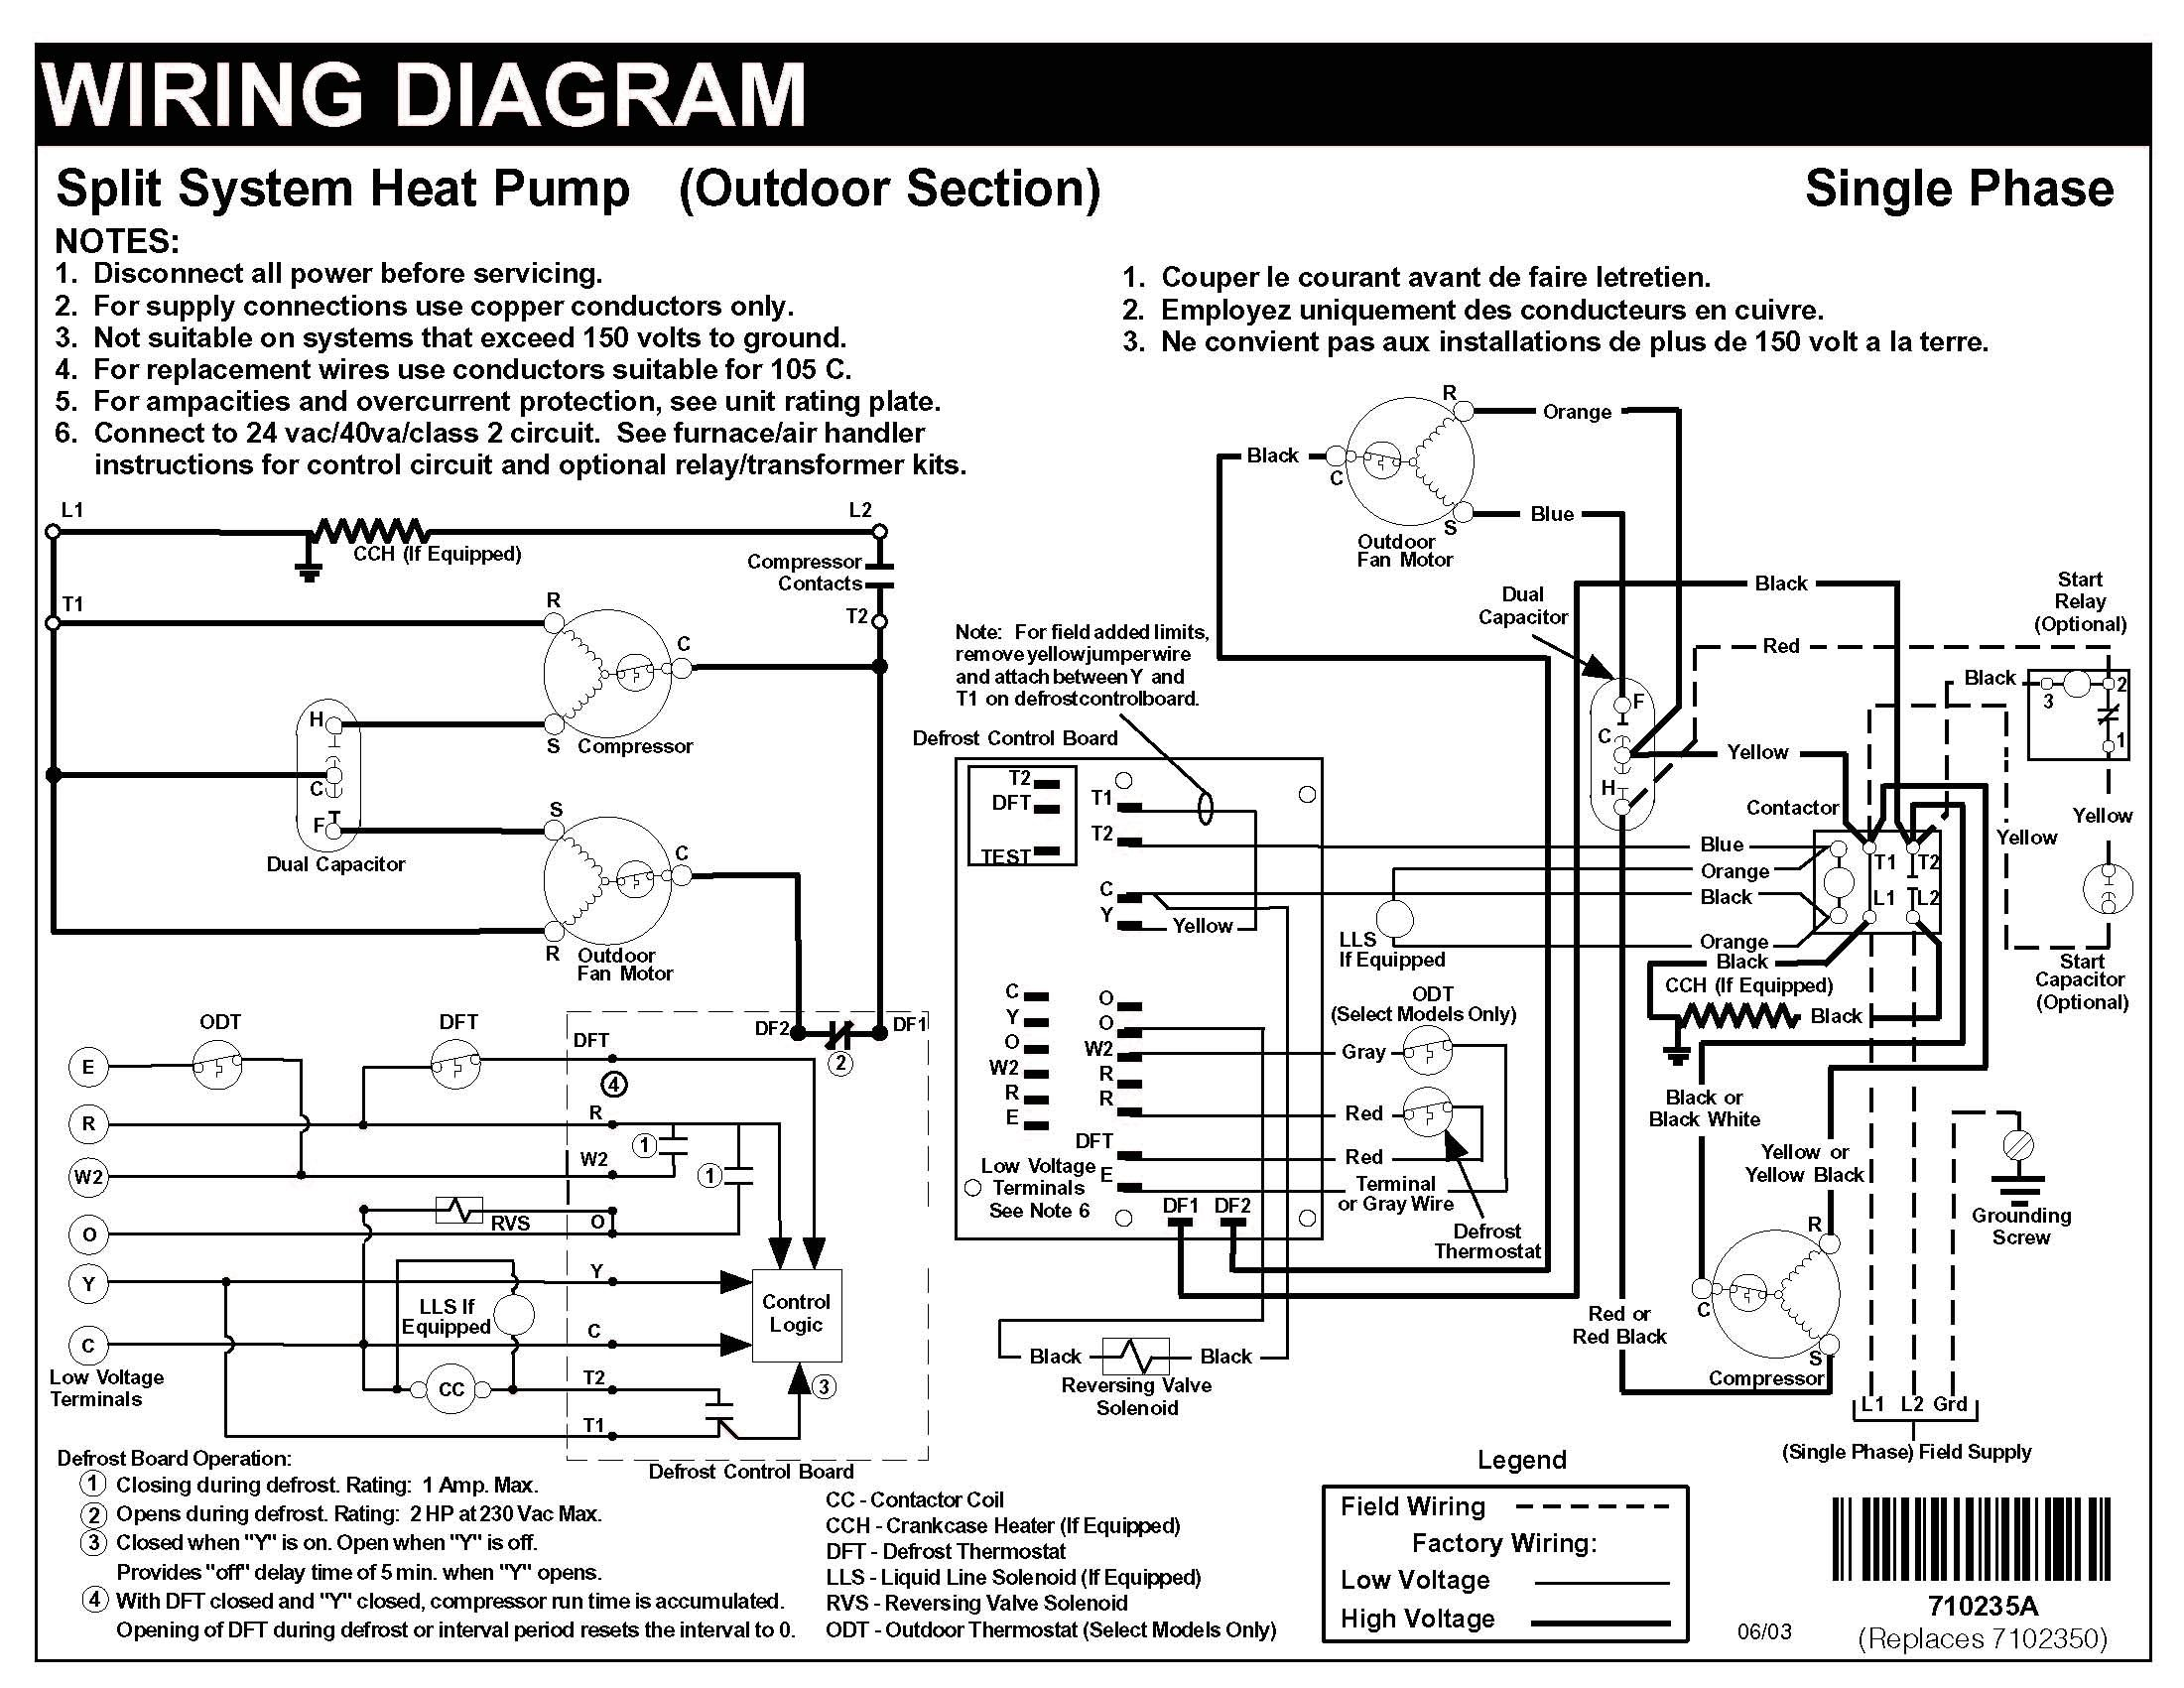 e08d295e6be2ee8be1bef44ac29add79 lennox ac wiring diagram premium coleman compressor parts diagram hvac heat pump wiring diagram at panicattacktreatment.co